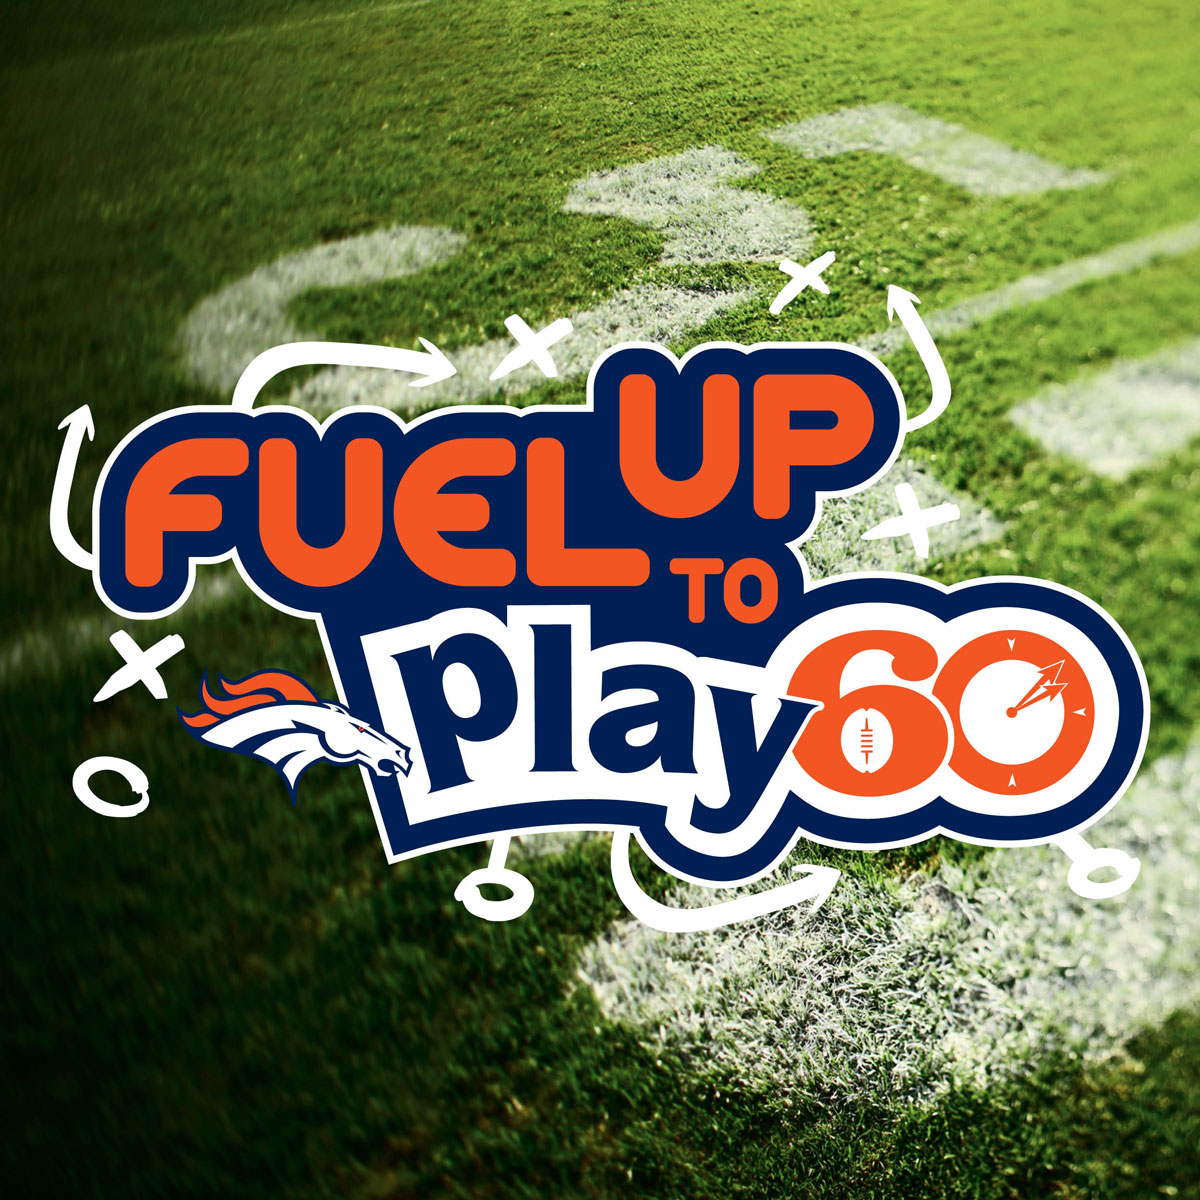 broncos fuel up to play 60 logo